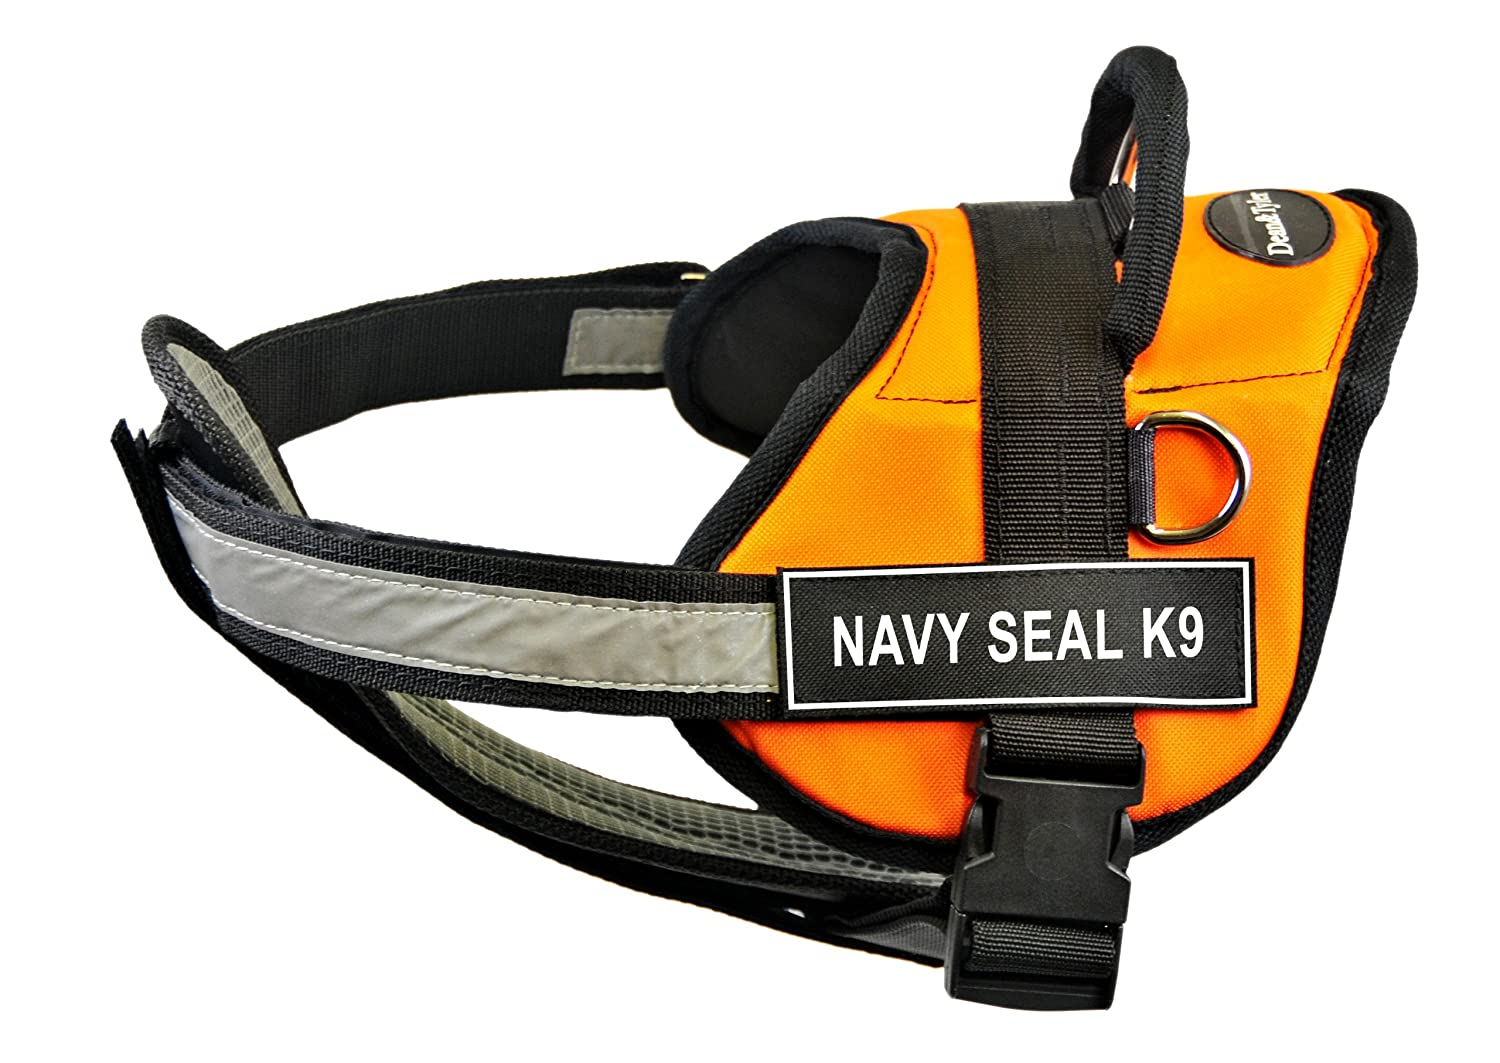 Dean & Tyler 25-Inch to 34-Inch Navy Seal K9 Dog Harness with Padded Reflective Chest Straps, Small, orange Black